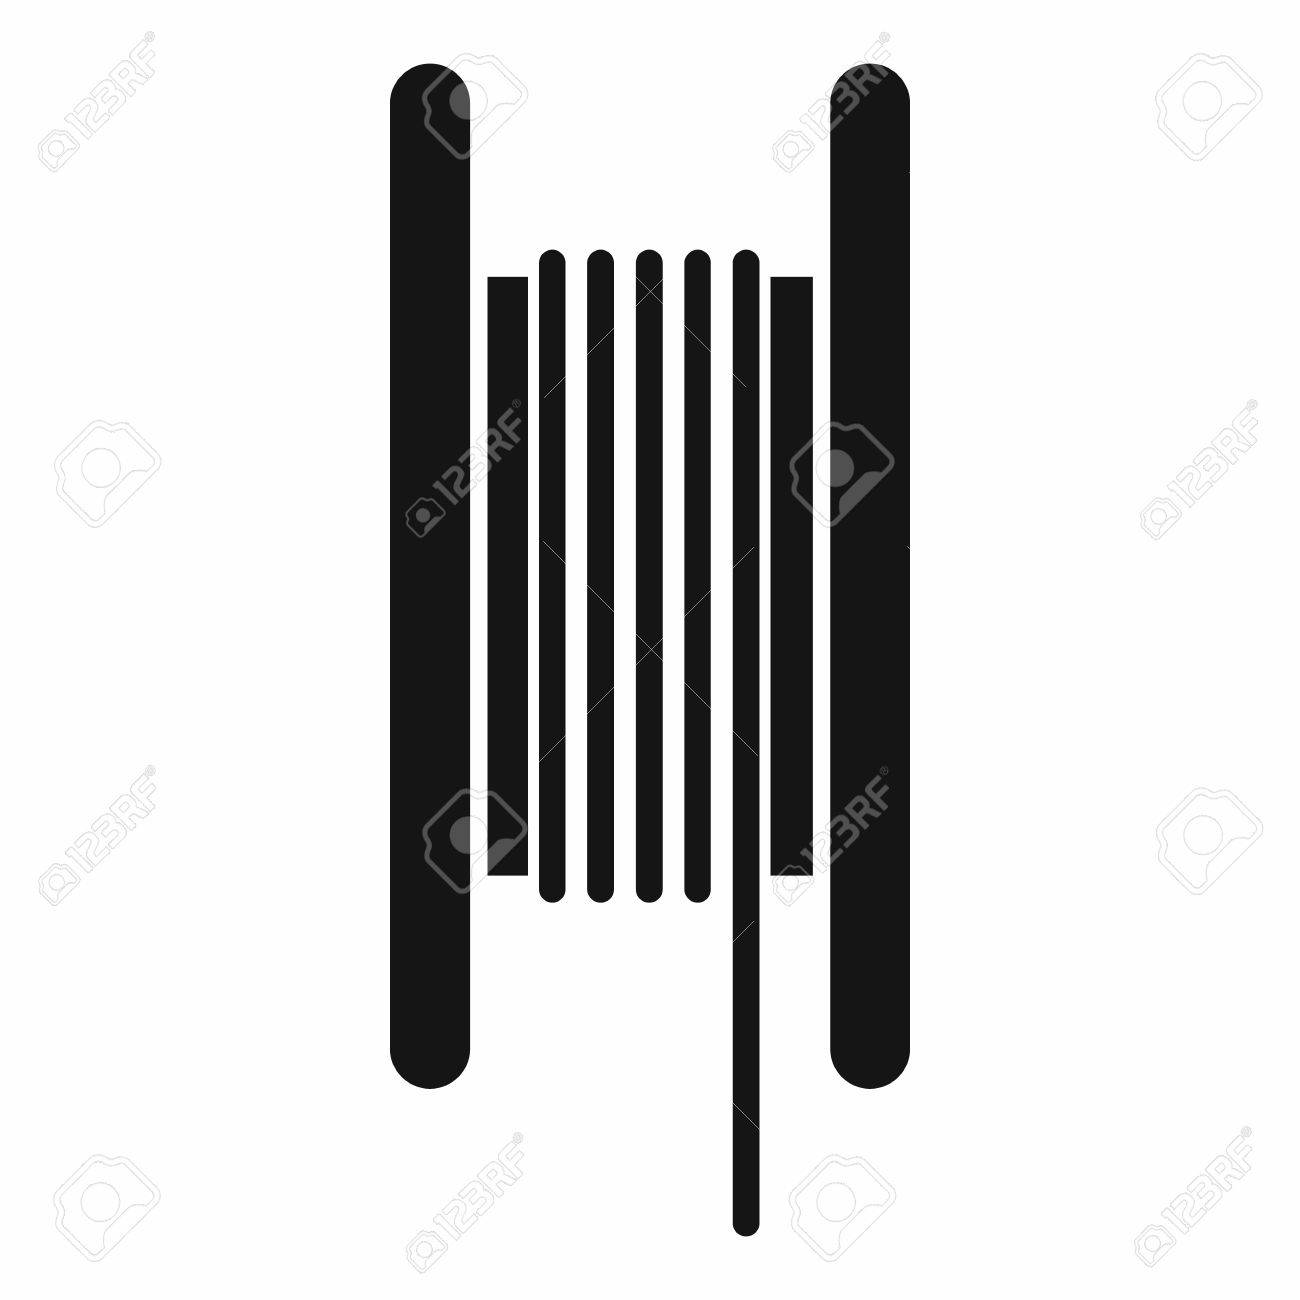 Electric cable in coil icon in simple style isolated on white..